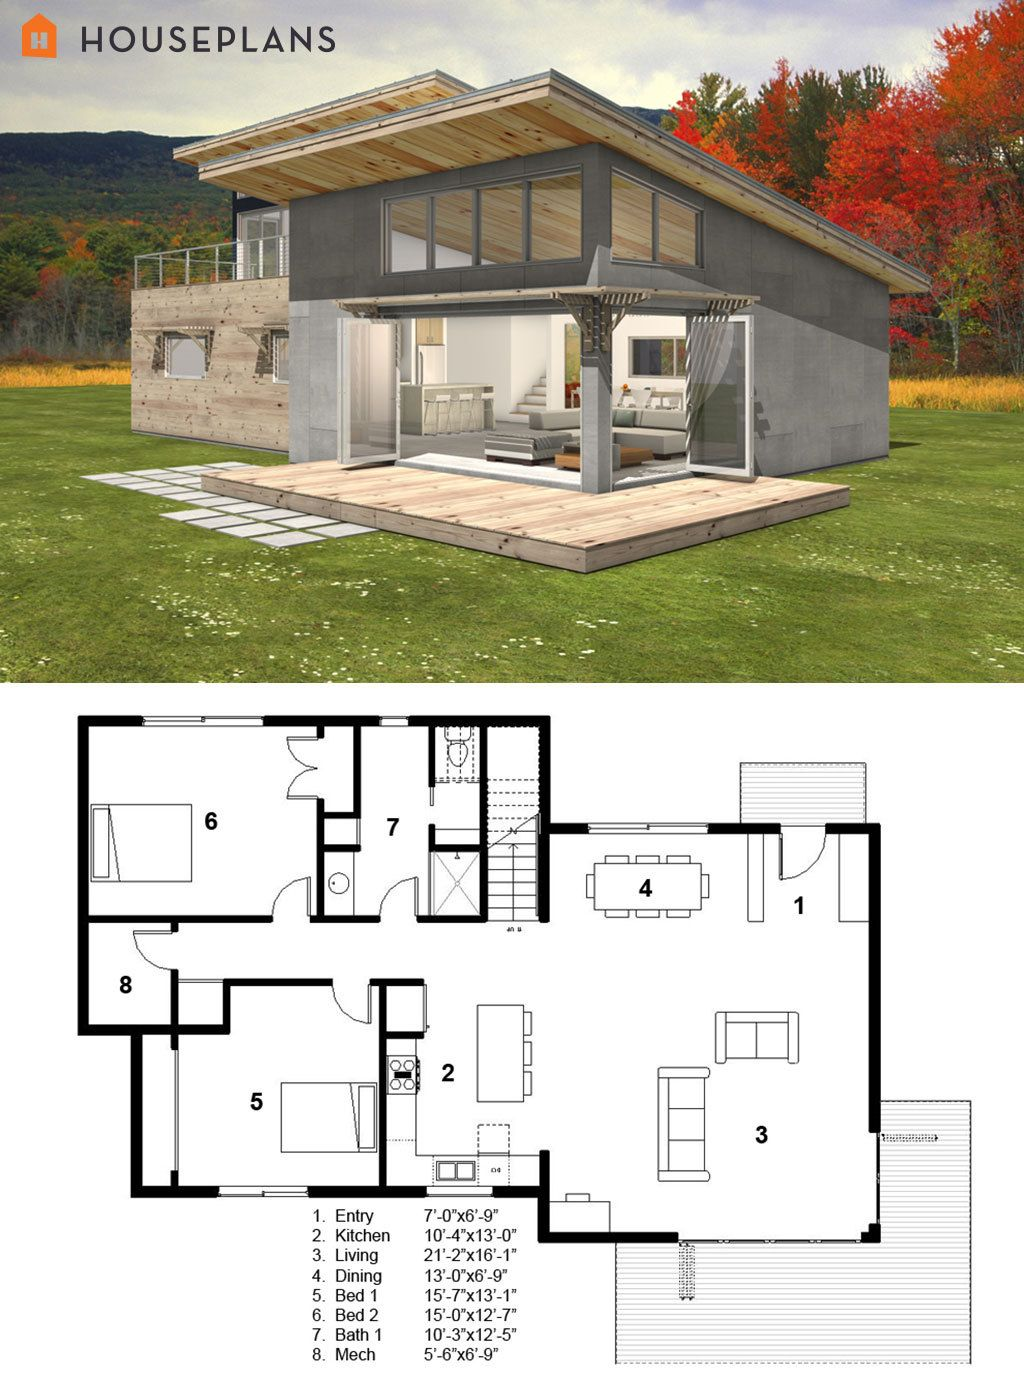 Modern style house plan 3 beds baths 2115 sq ft for Contemporary building plans